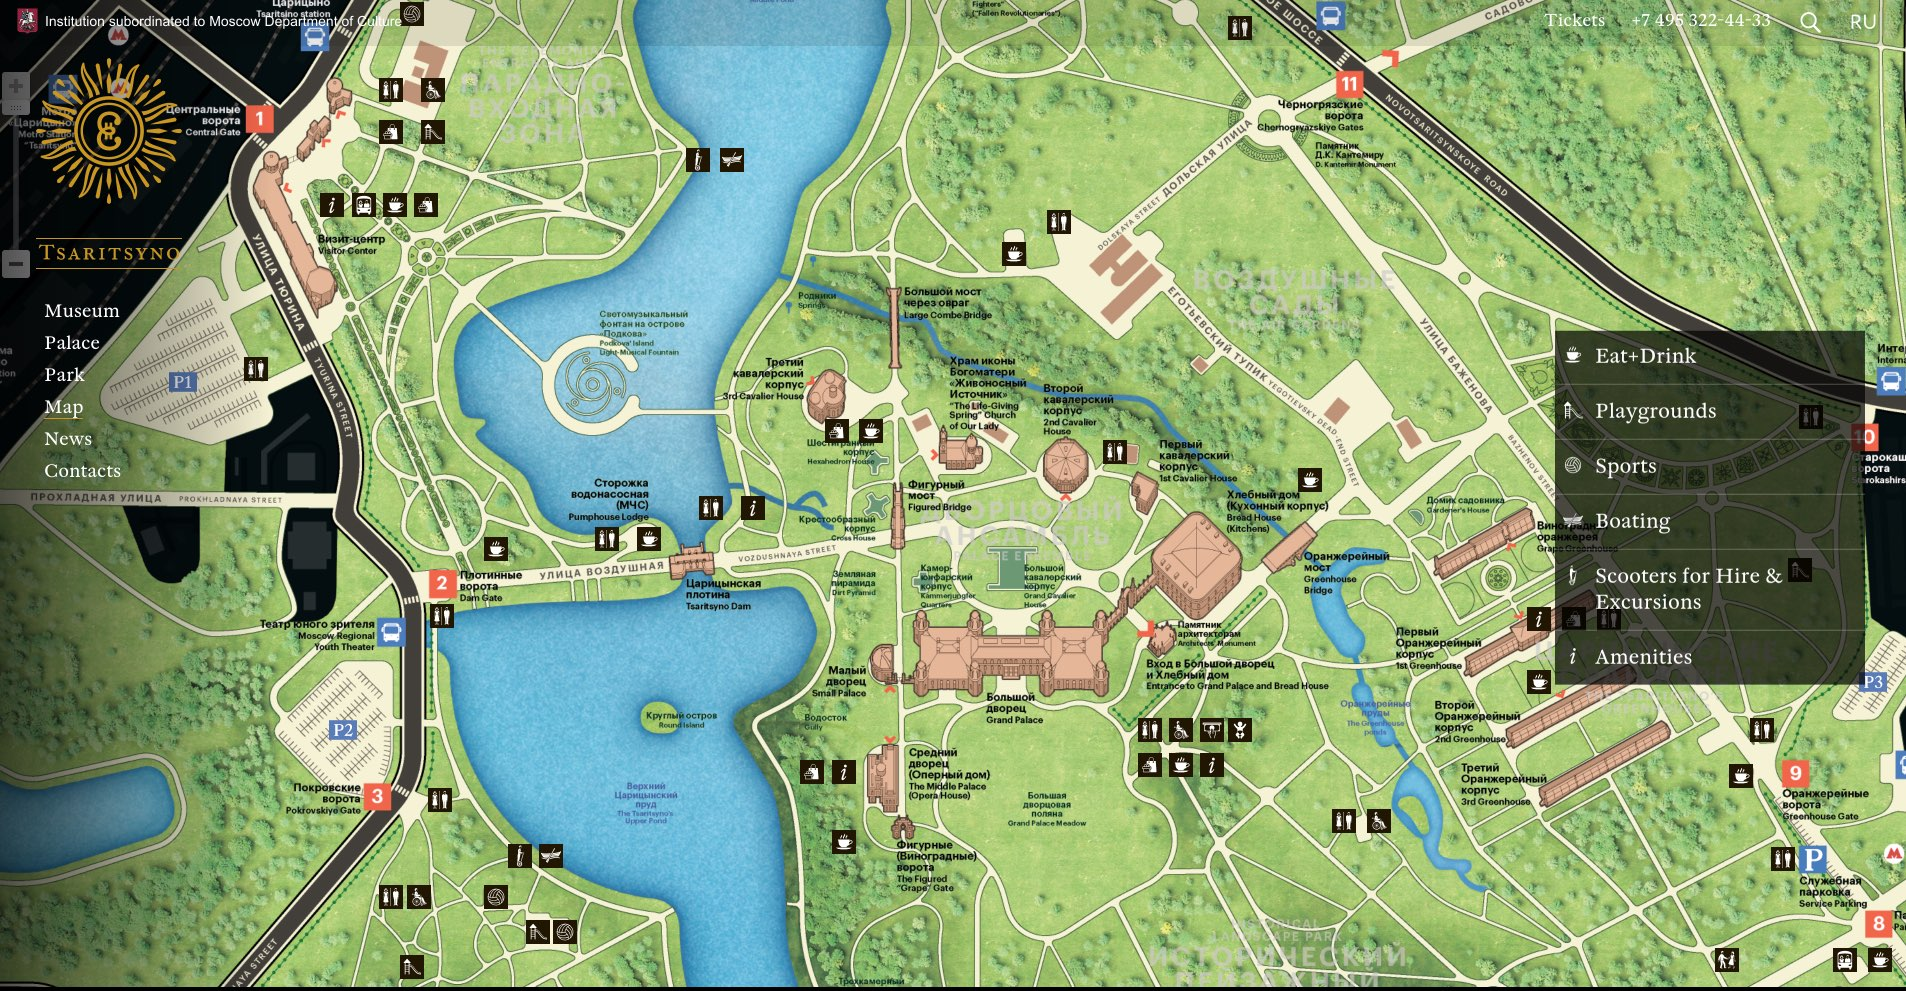 Map - The Museum & Nature Reserve Tsaritsyno